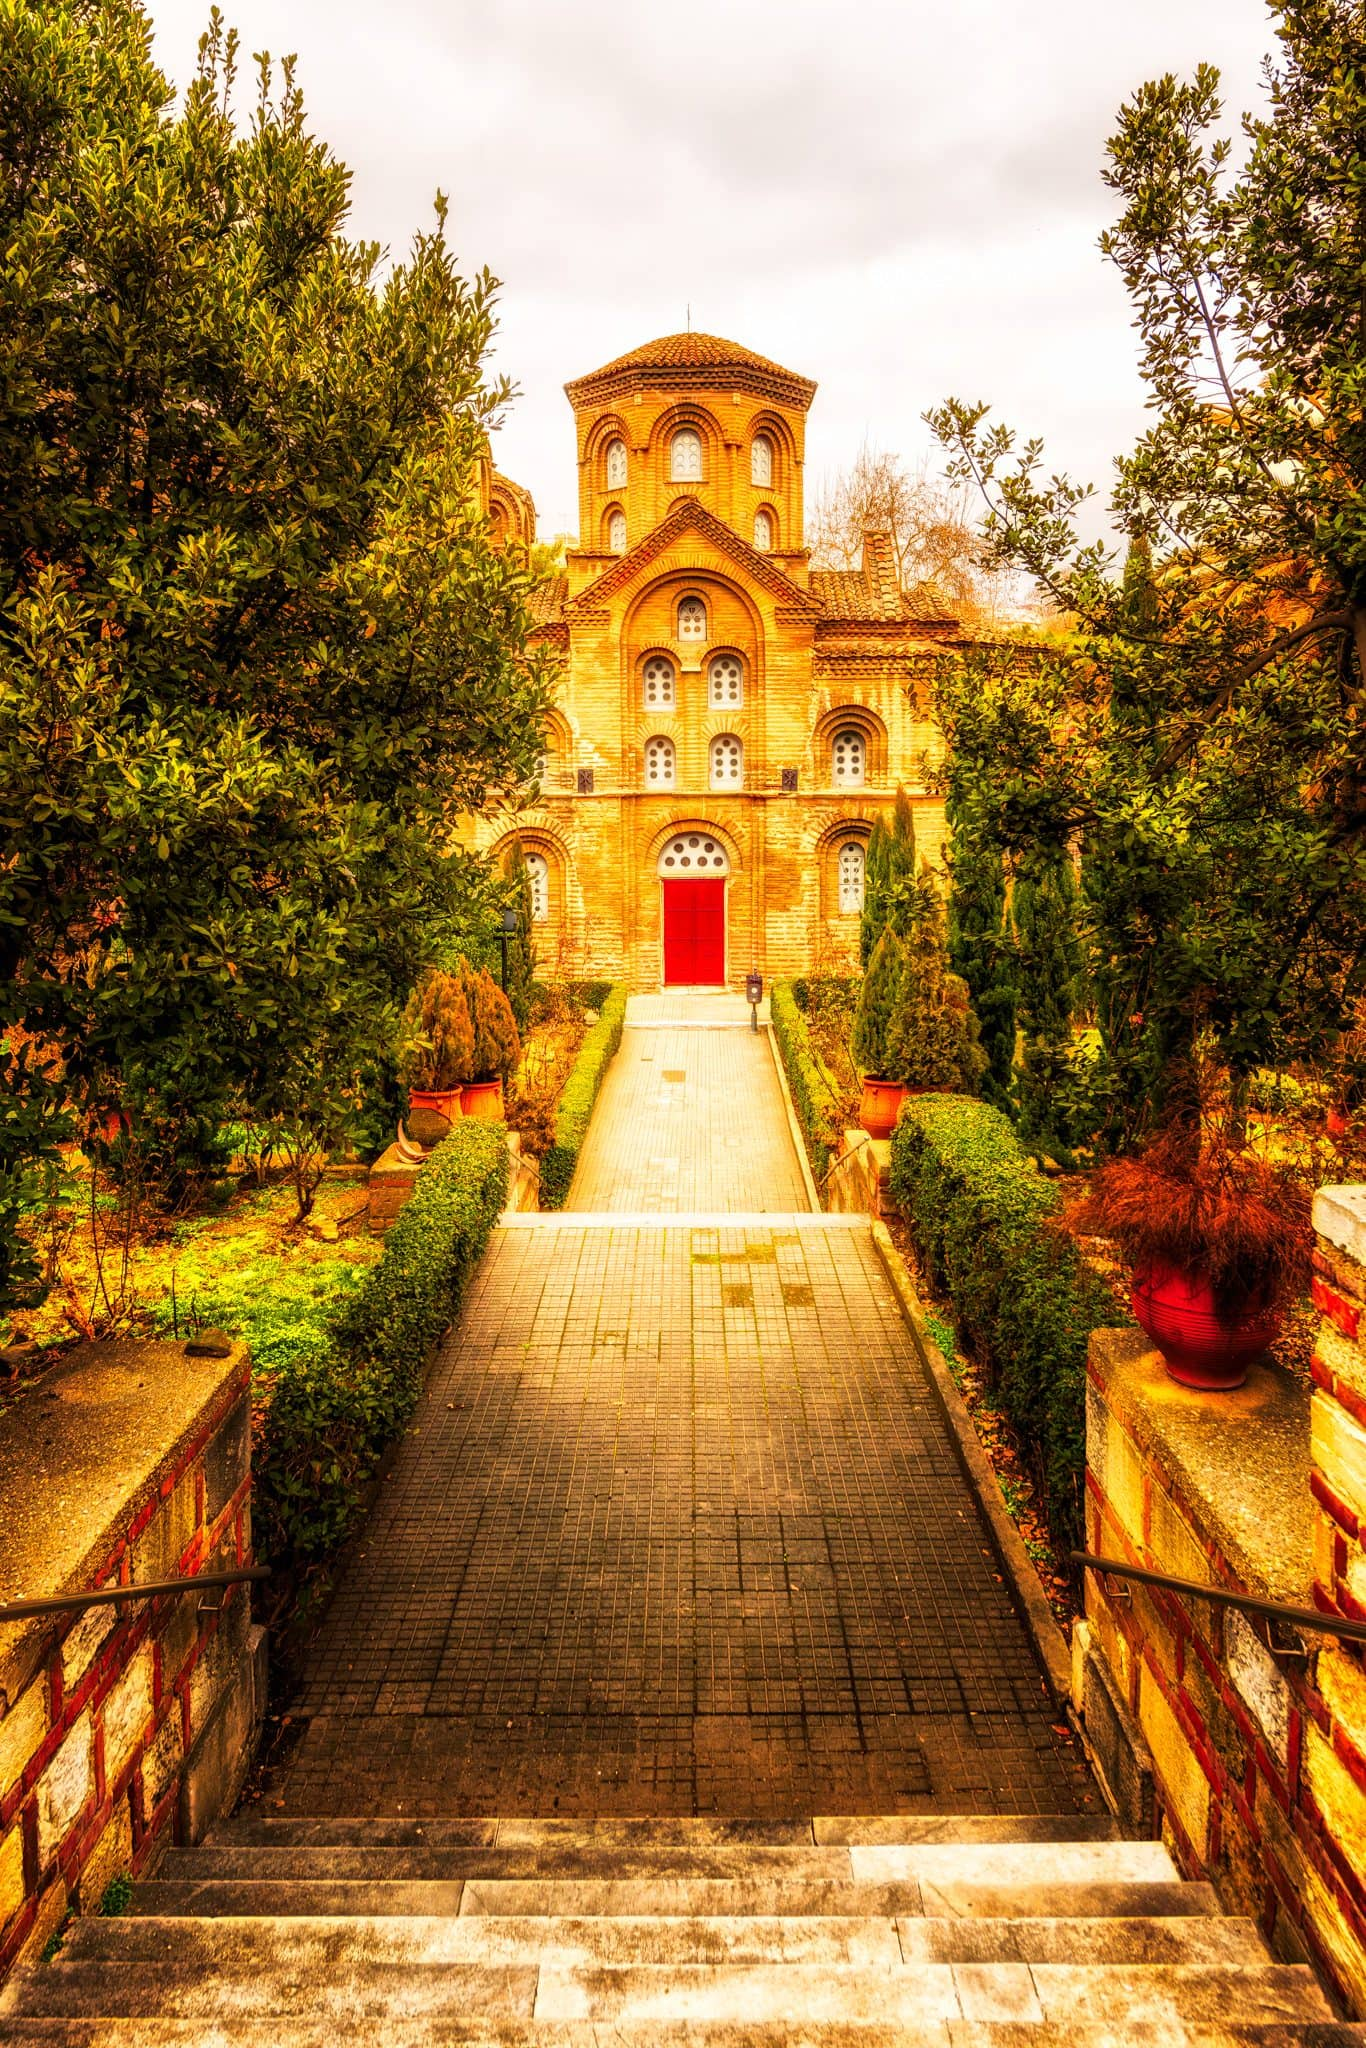 Daytime picture of the Church of Panagia Chalkeon, located in Thessaloniki, Greece.